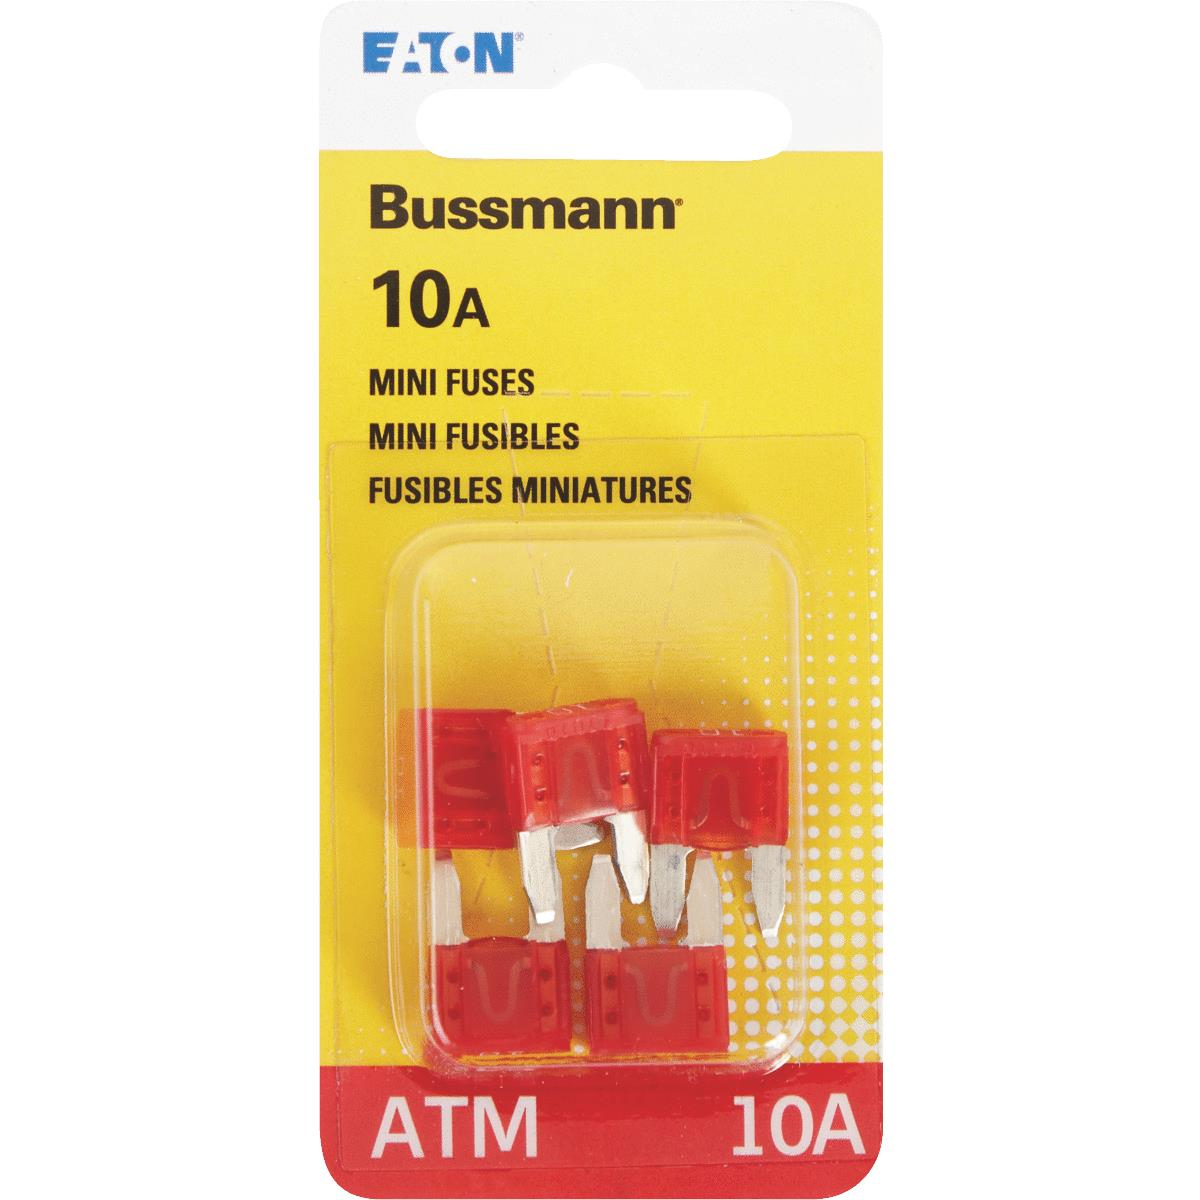 New 10A 10 Amp ATM Mini Blade AUTO Fuse 25 PACK